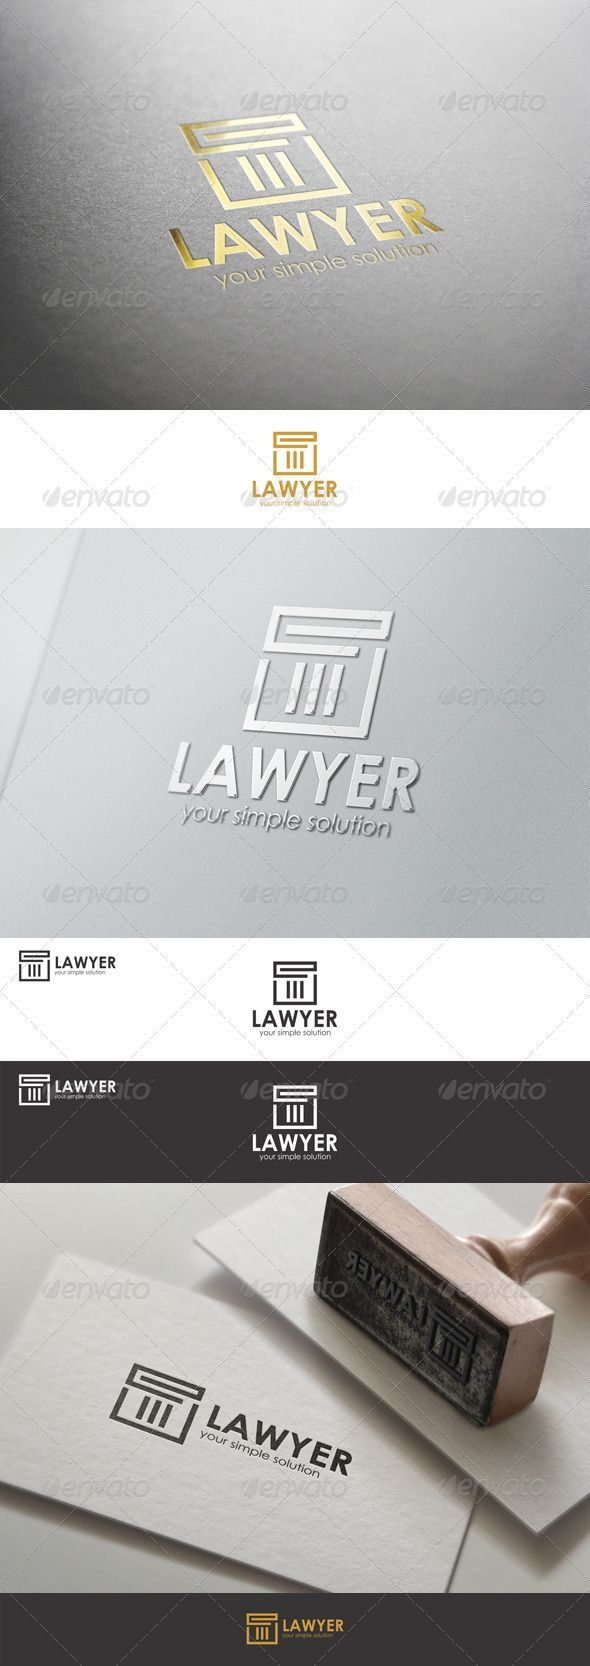 Lawyer - Justice Firm Logo. Lawyer Logo. Monument Column Logo abstract symbol – Is a logo that can be used for Lawyer agencies, Law firm, Judicial and Legal agencies, insurance companies, banks, finance, real estate, websites logo, and other uses. Lawyer Legal Logo is a logo that can be used for advocacy and professional laws, law firms, etc. Excellent logo, easy memorable, simple shapes, unique concept.